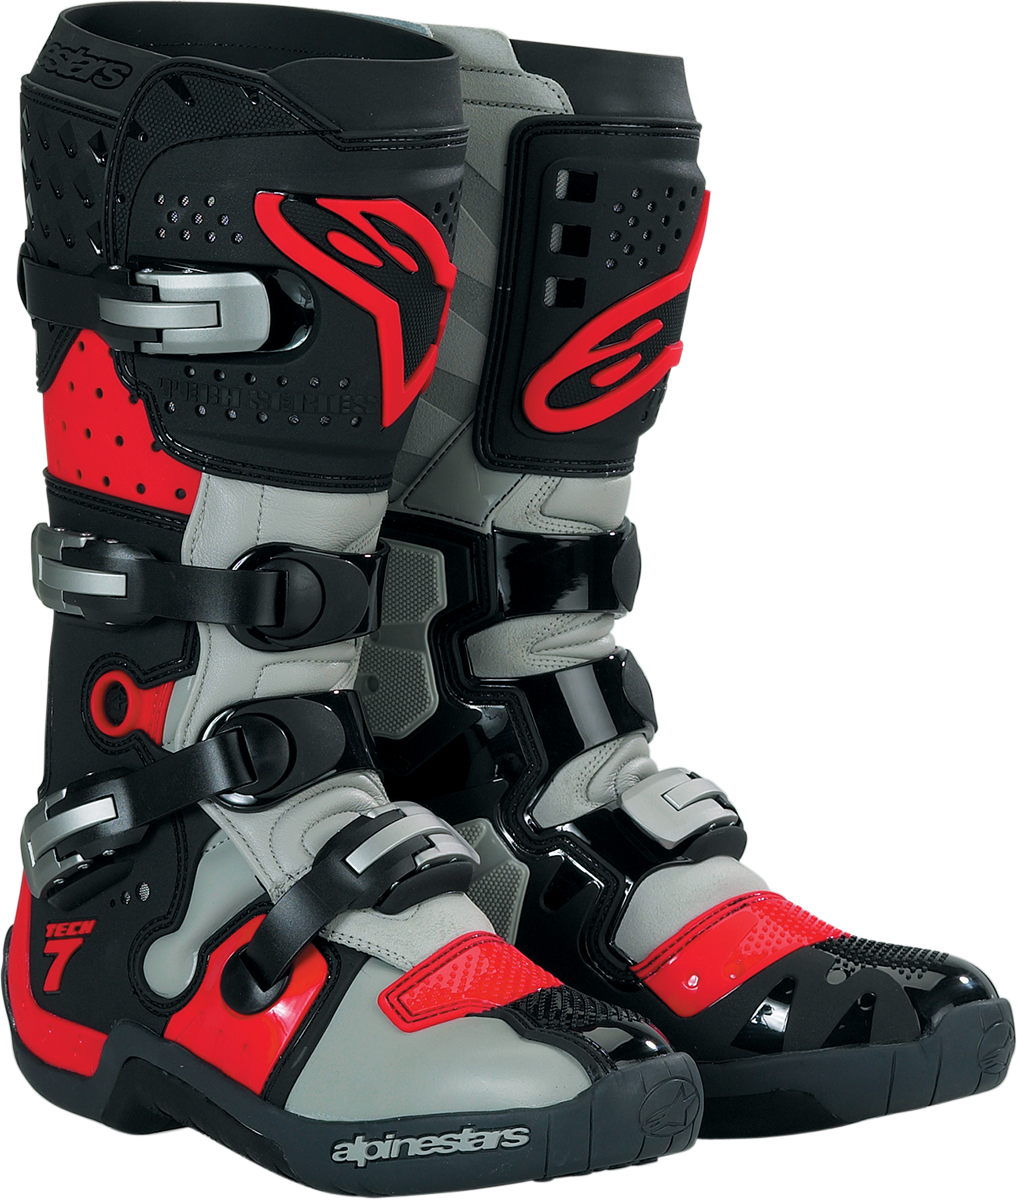 Alpine Motorcycle Gear >> Alpinestars Tech 7 Offroad Motorcycle Boots - Black / Red